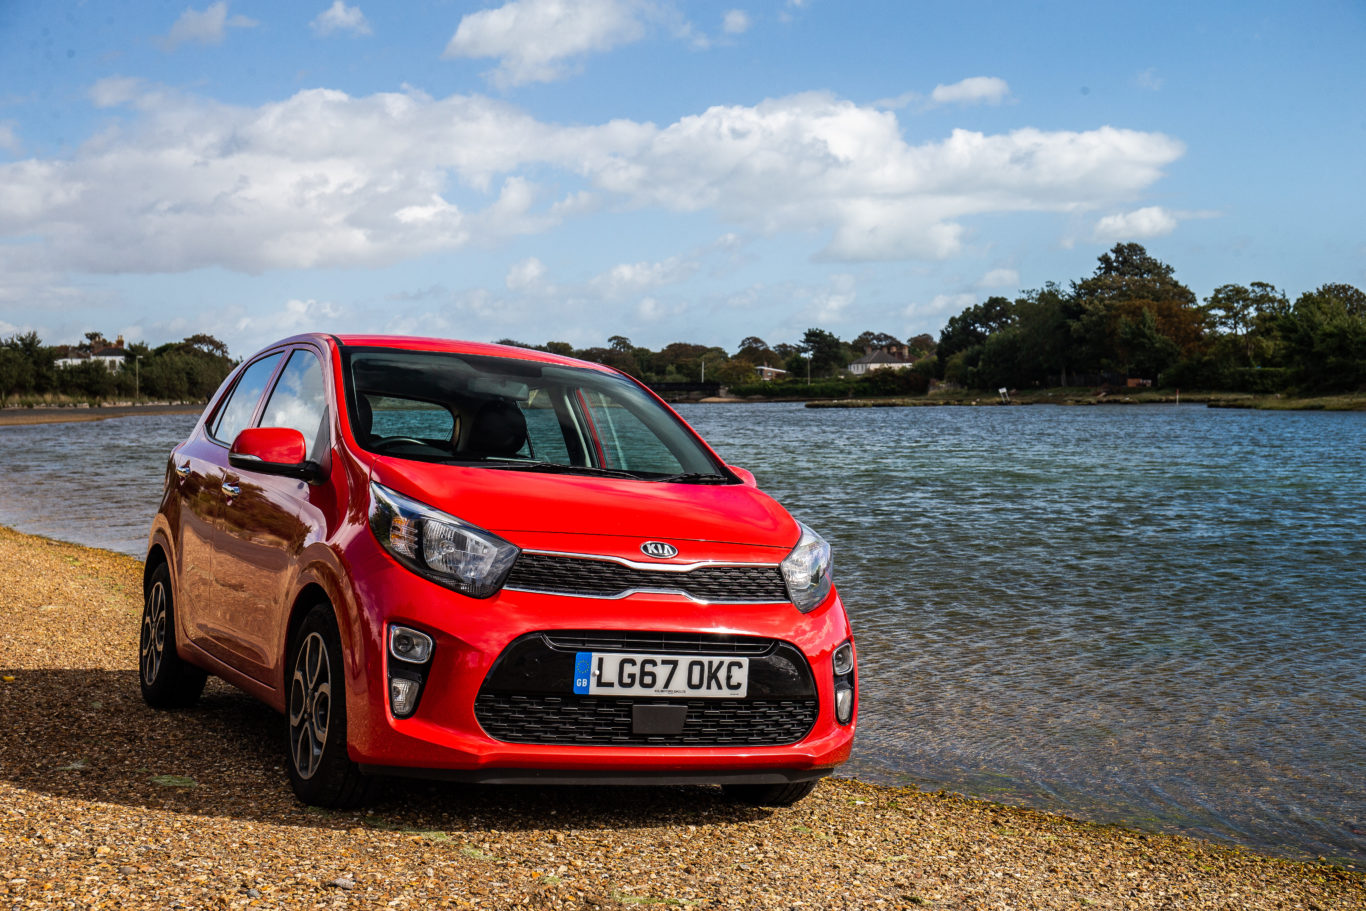 Kia's 'Tiger Nose' grille is prominent at the front of the Picanto